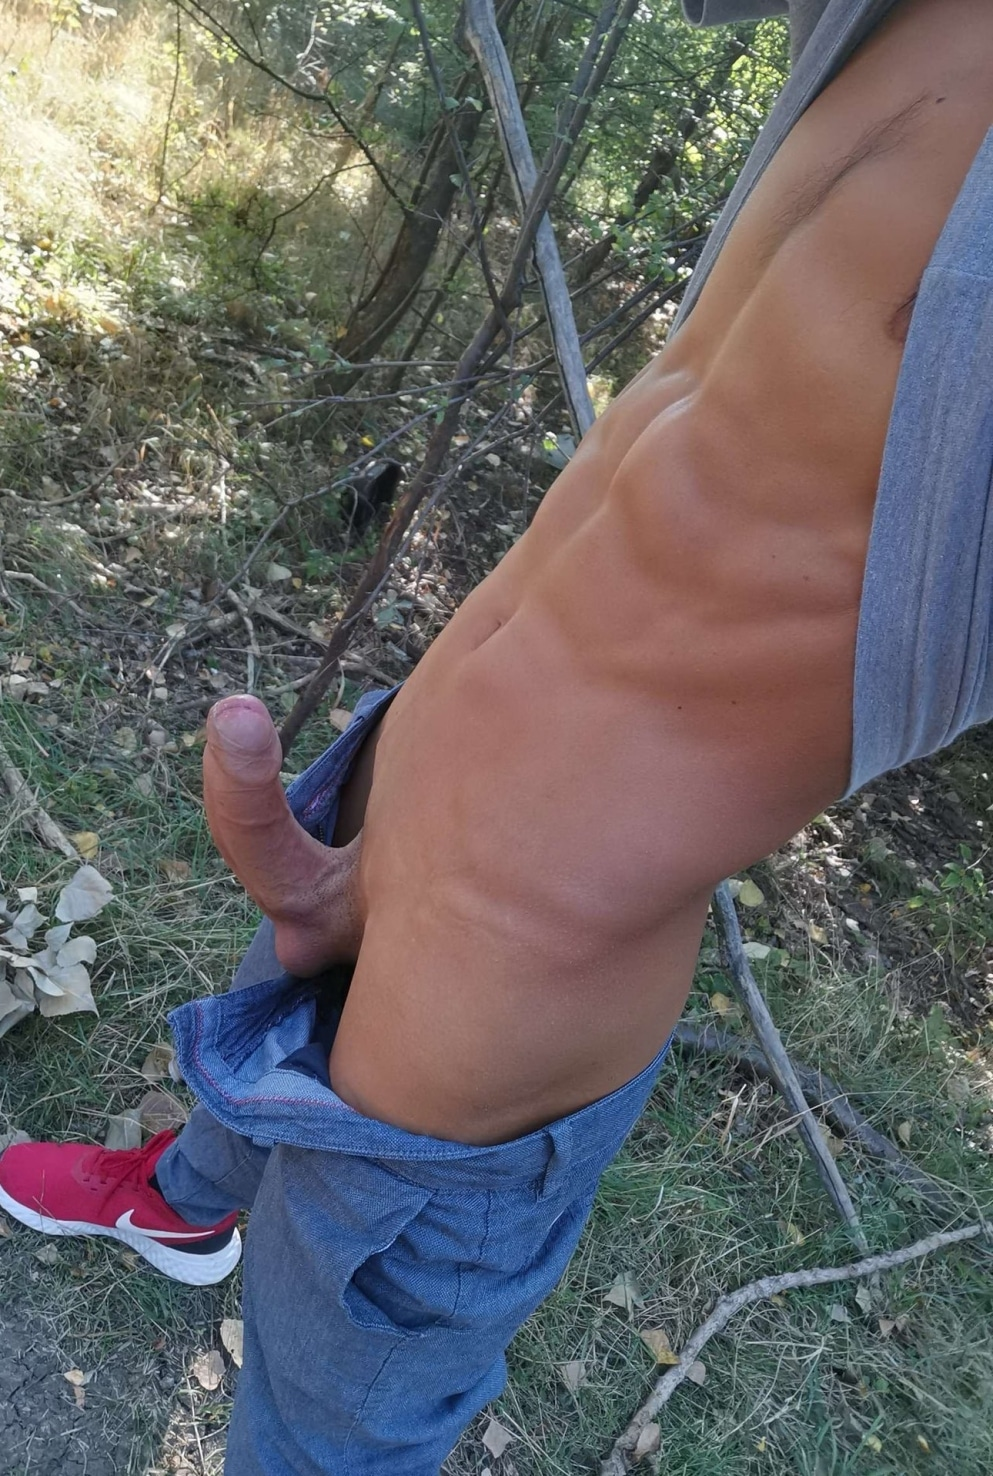 Hard dick picture outdoors